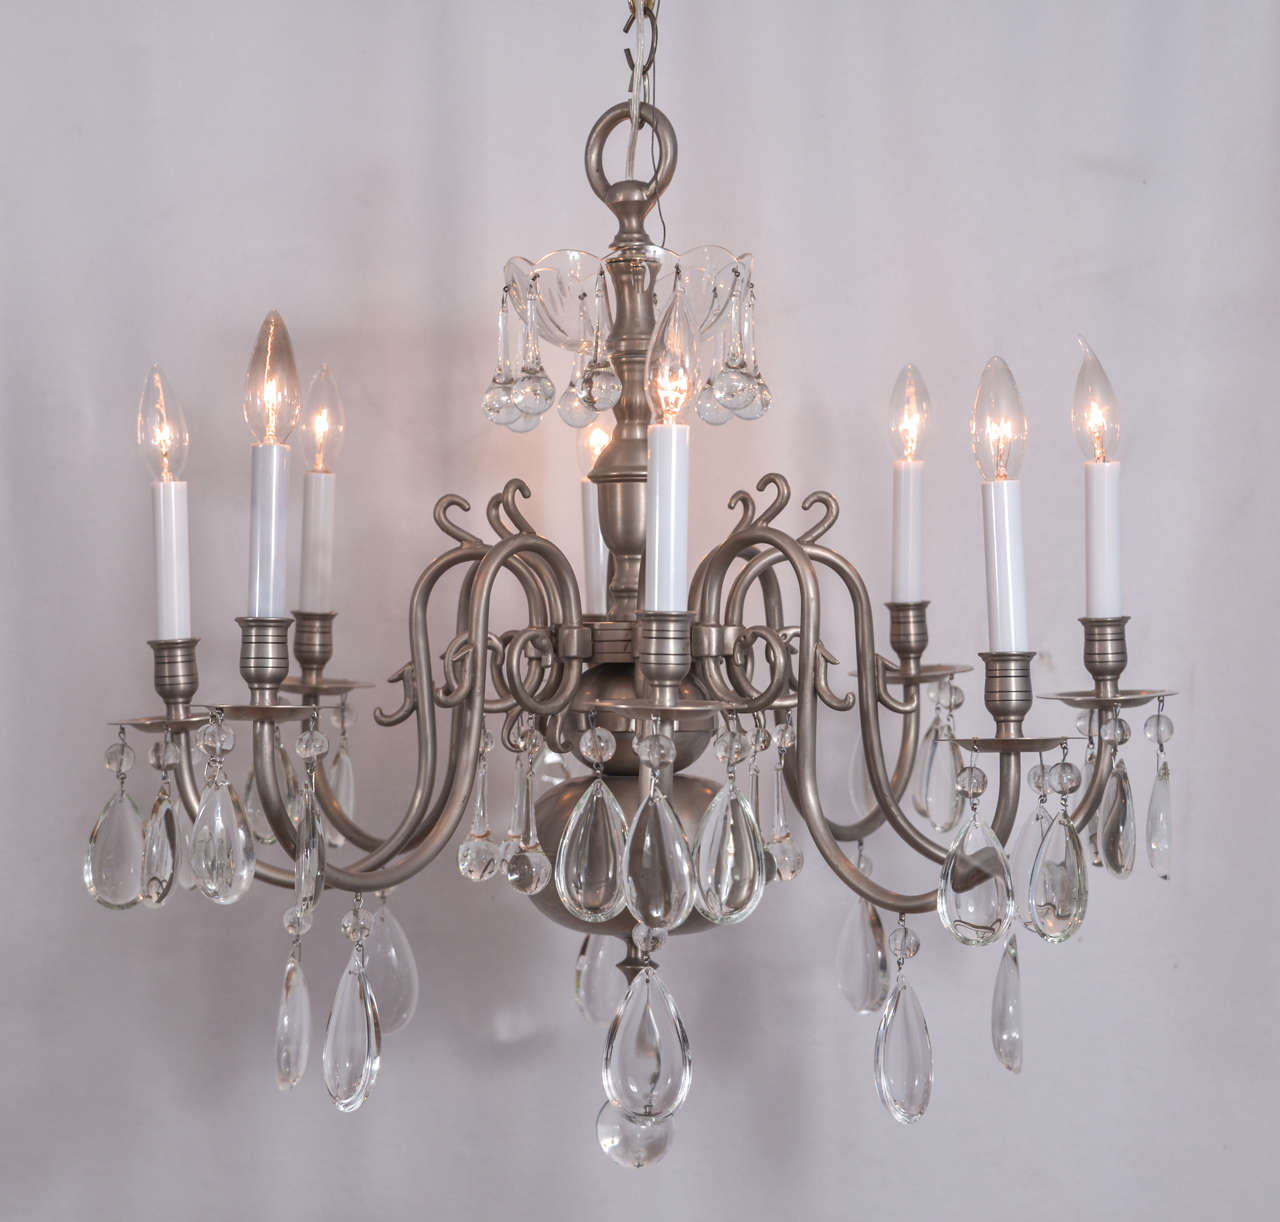 Brushed nickel williamsburg with a new twist for sale at for Williamsburg style lighting